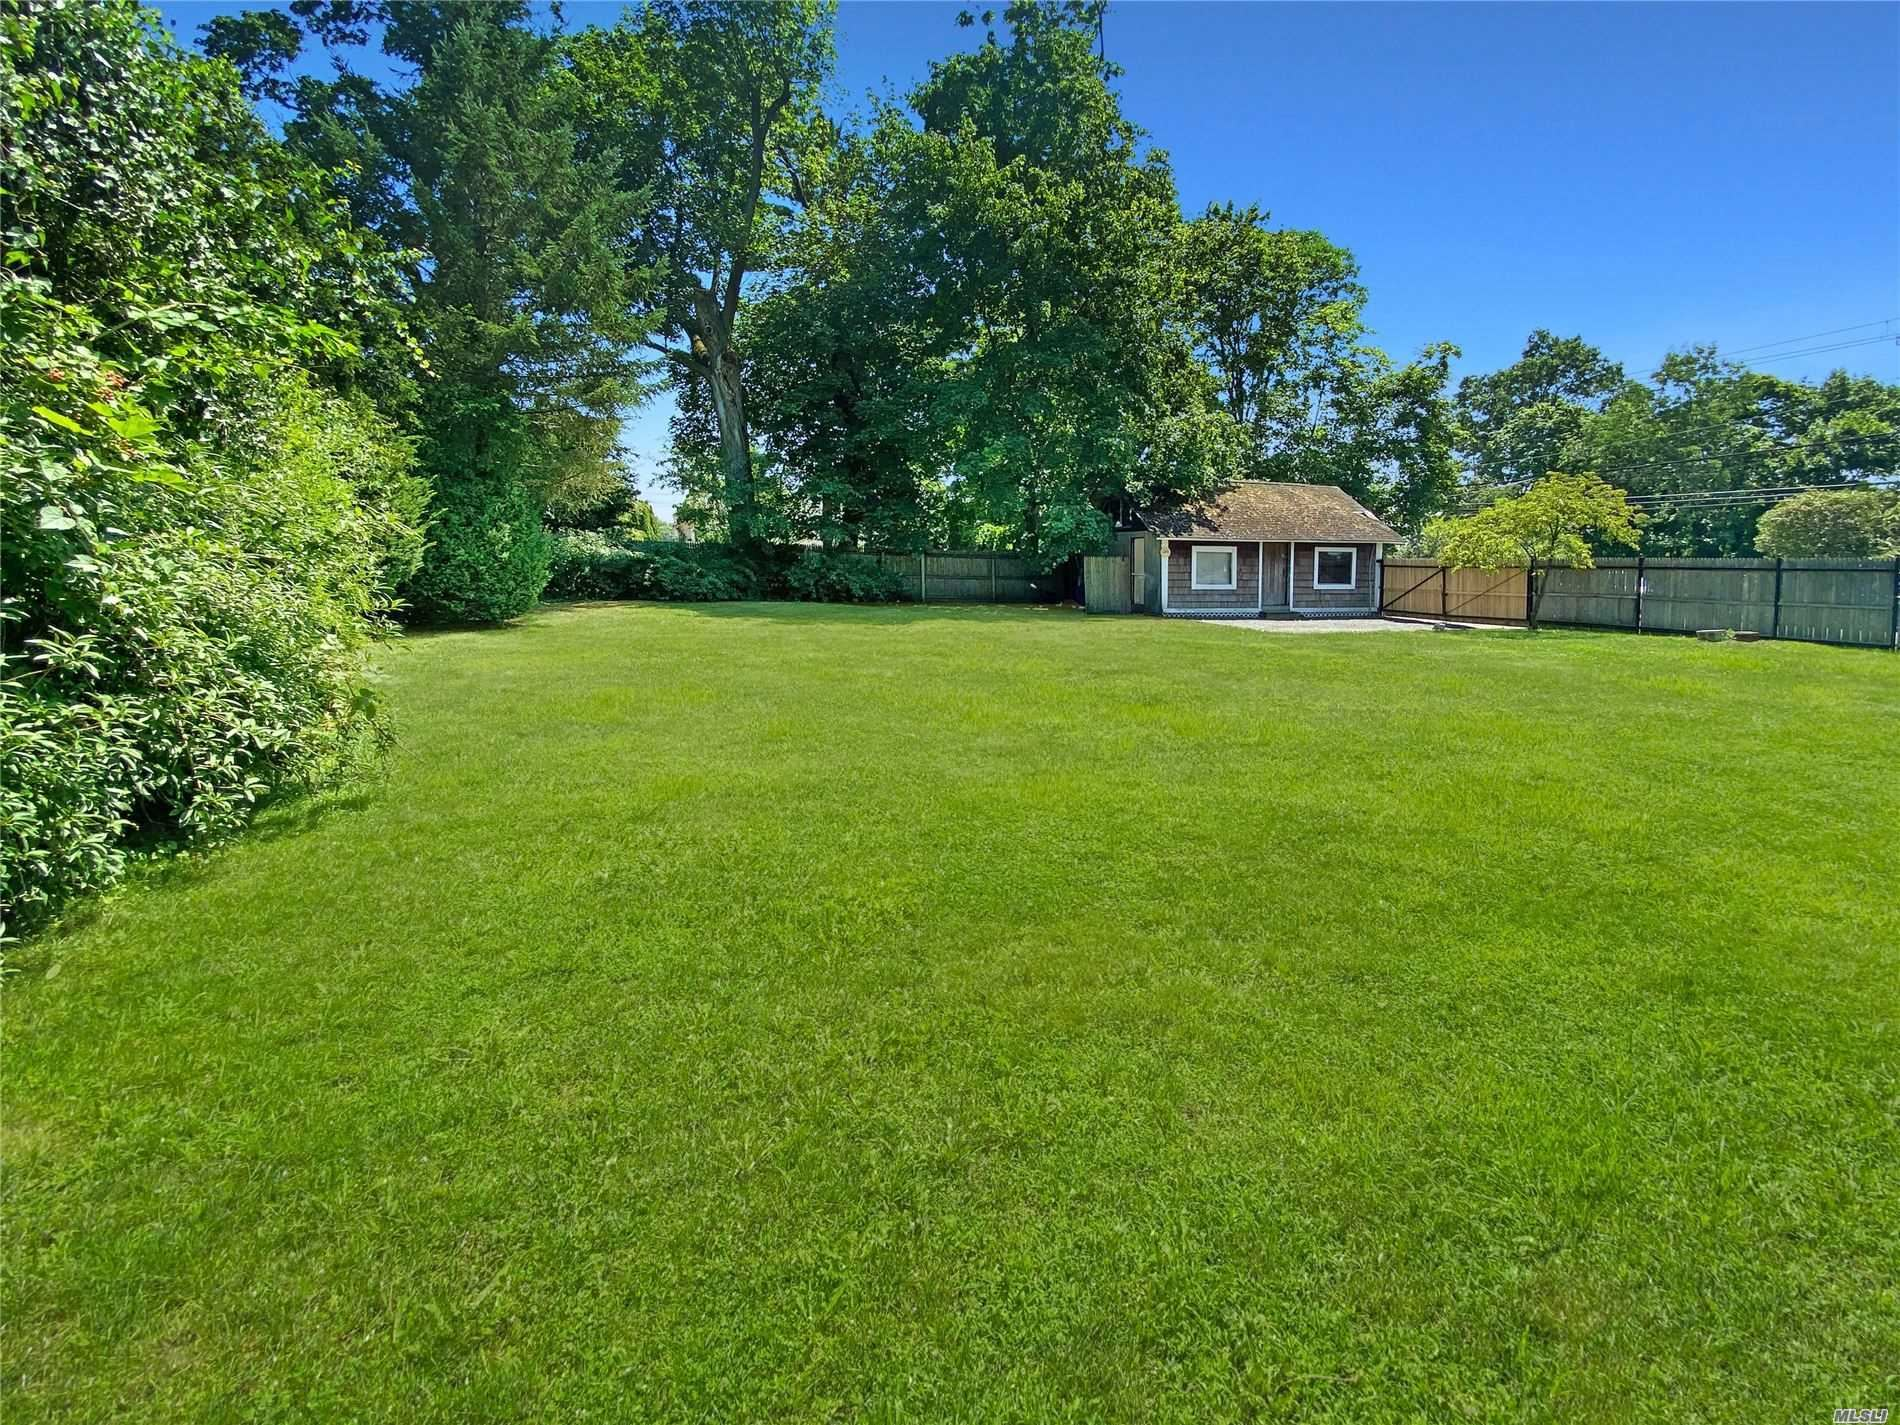 975 Oyster Bay Road, East Norwich, NY 11732 - MLS#: 3236161